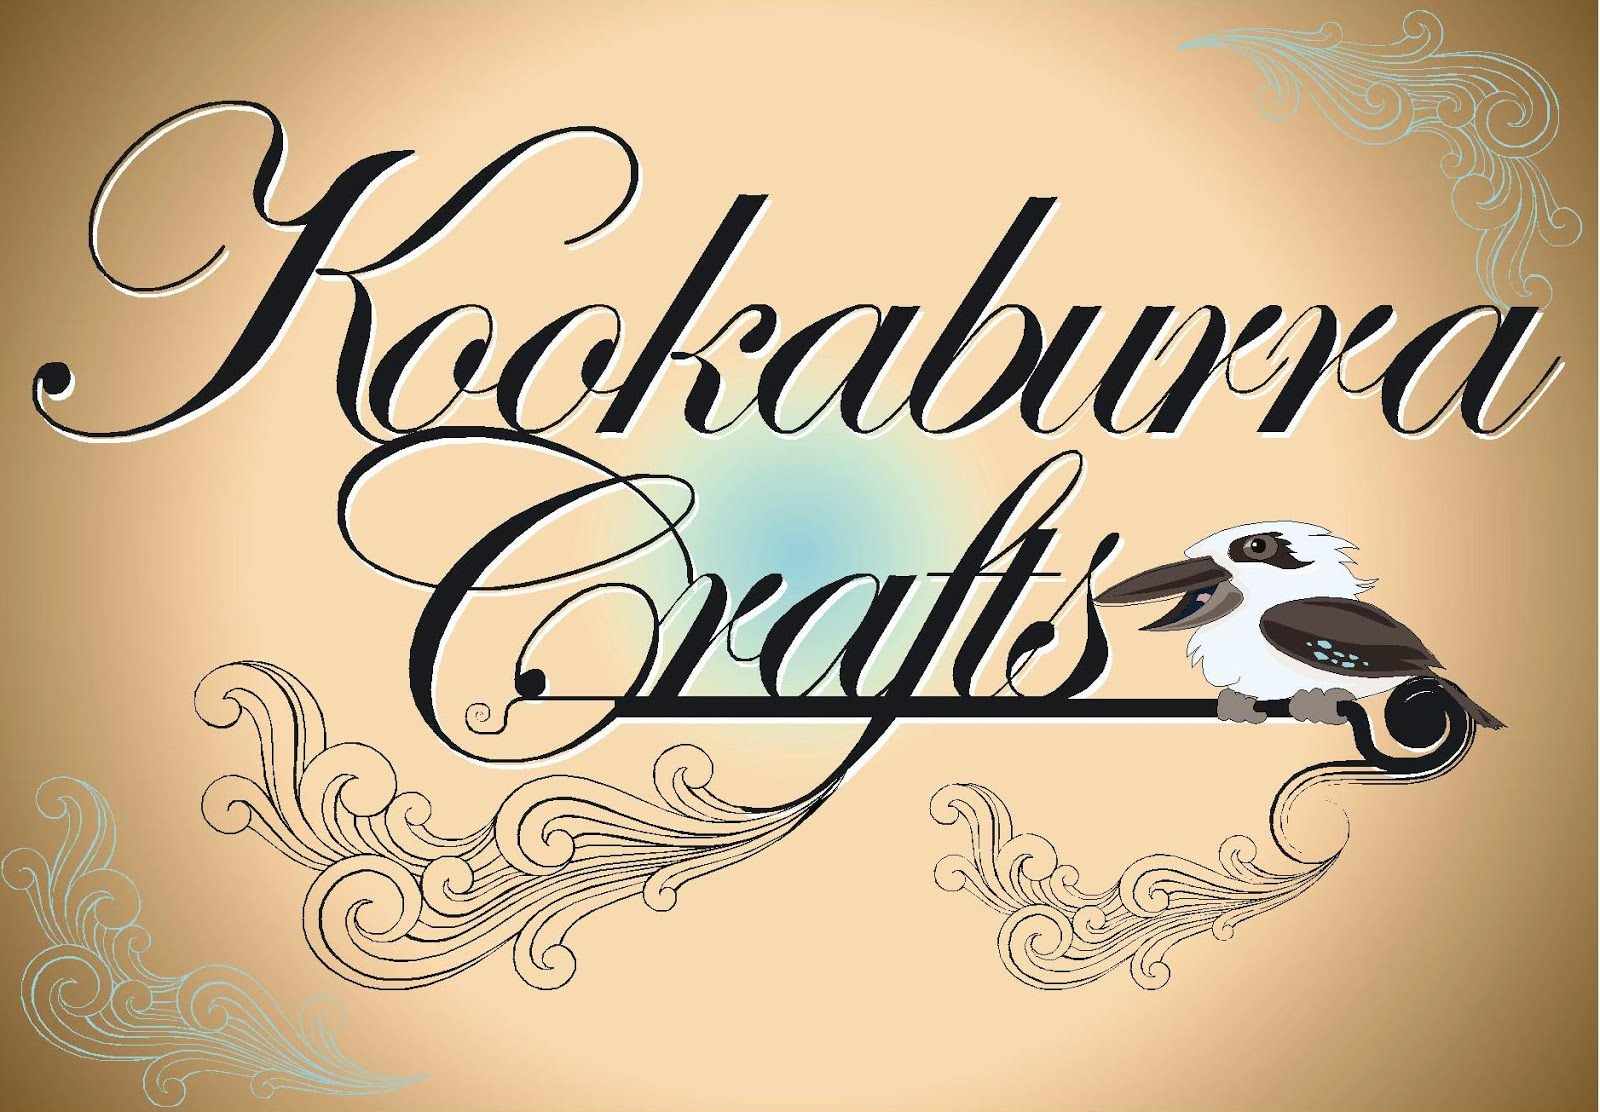 Kookaburra Crafts